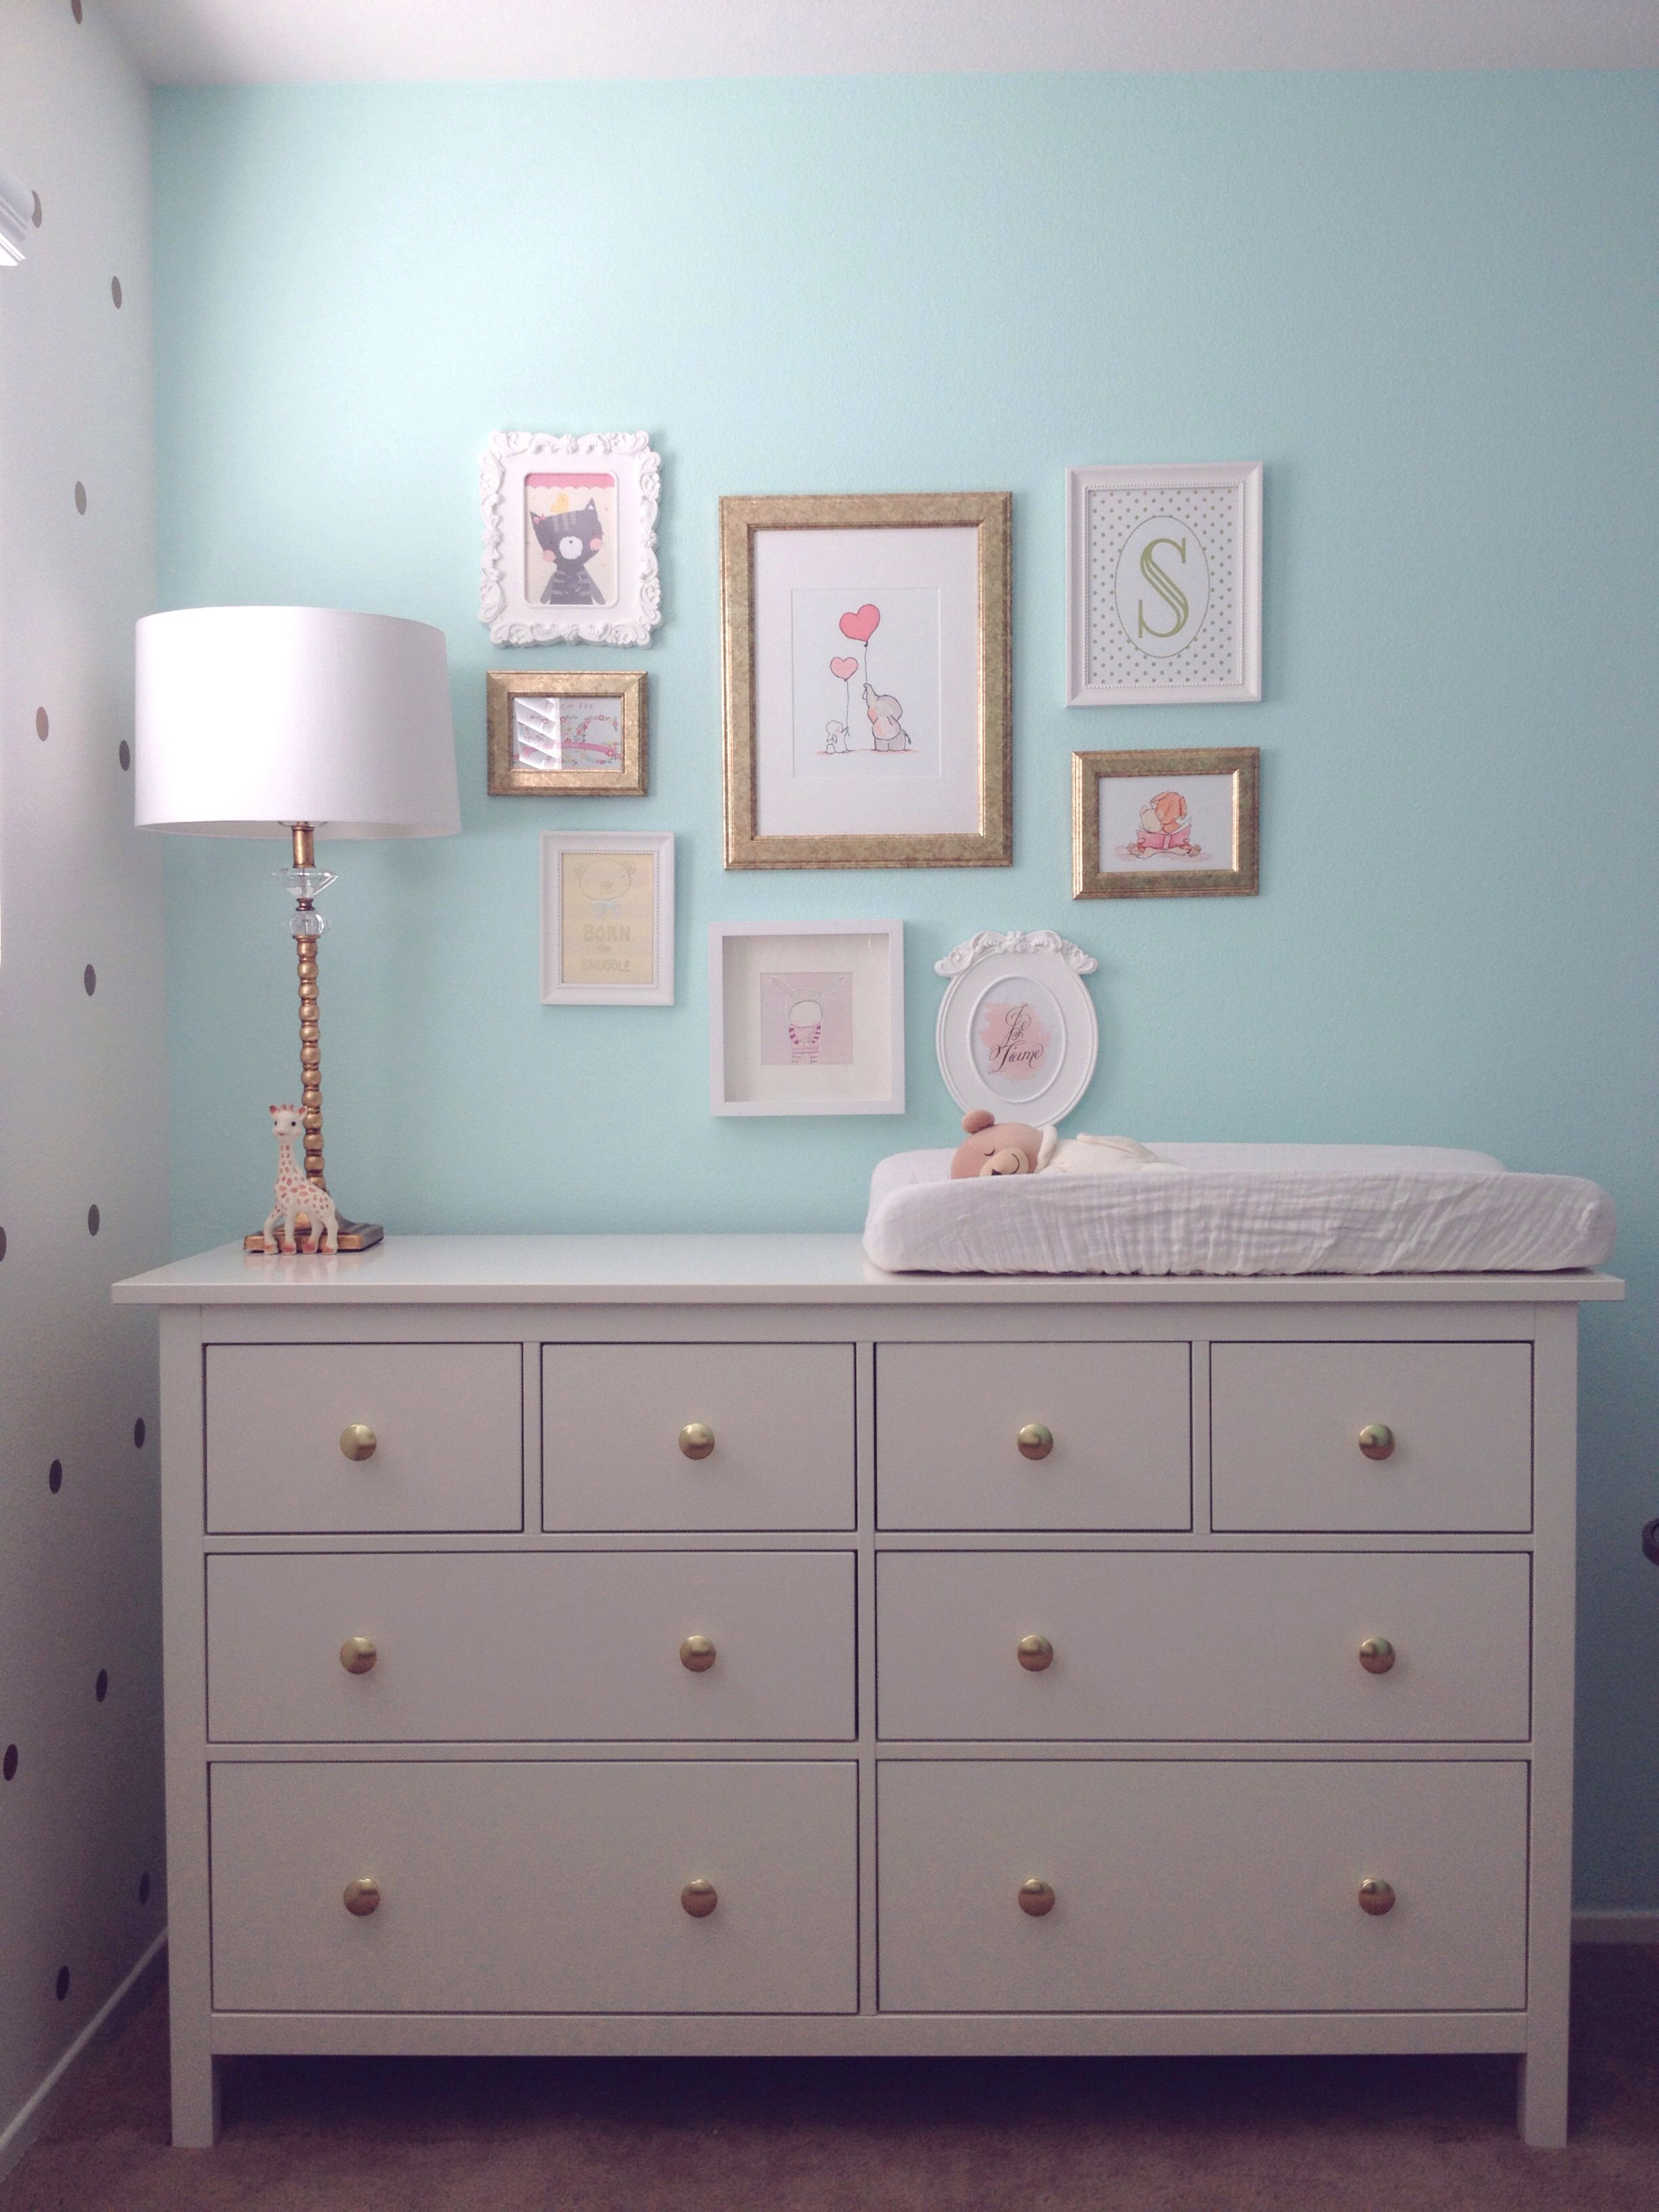 Babyzimmer Einrichtungsideen Mint And Gold Nursery Frames From Ikea Hemnes Dresser From